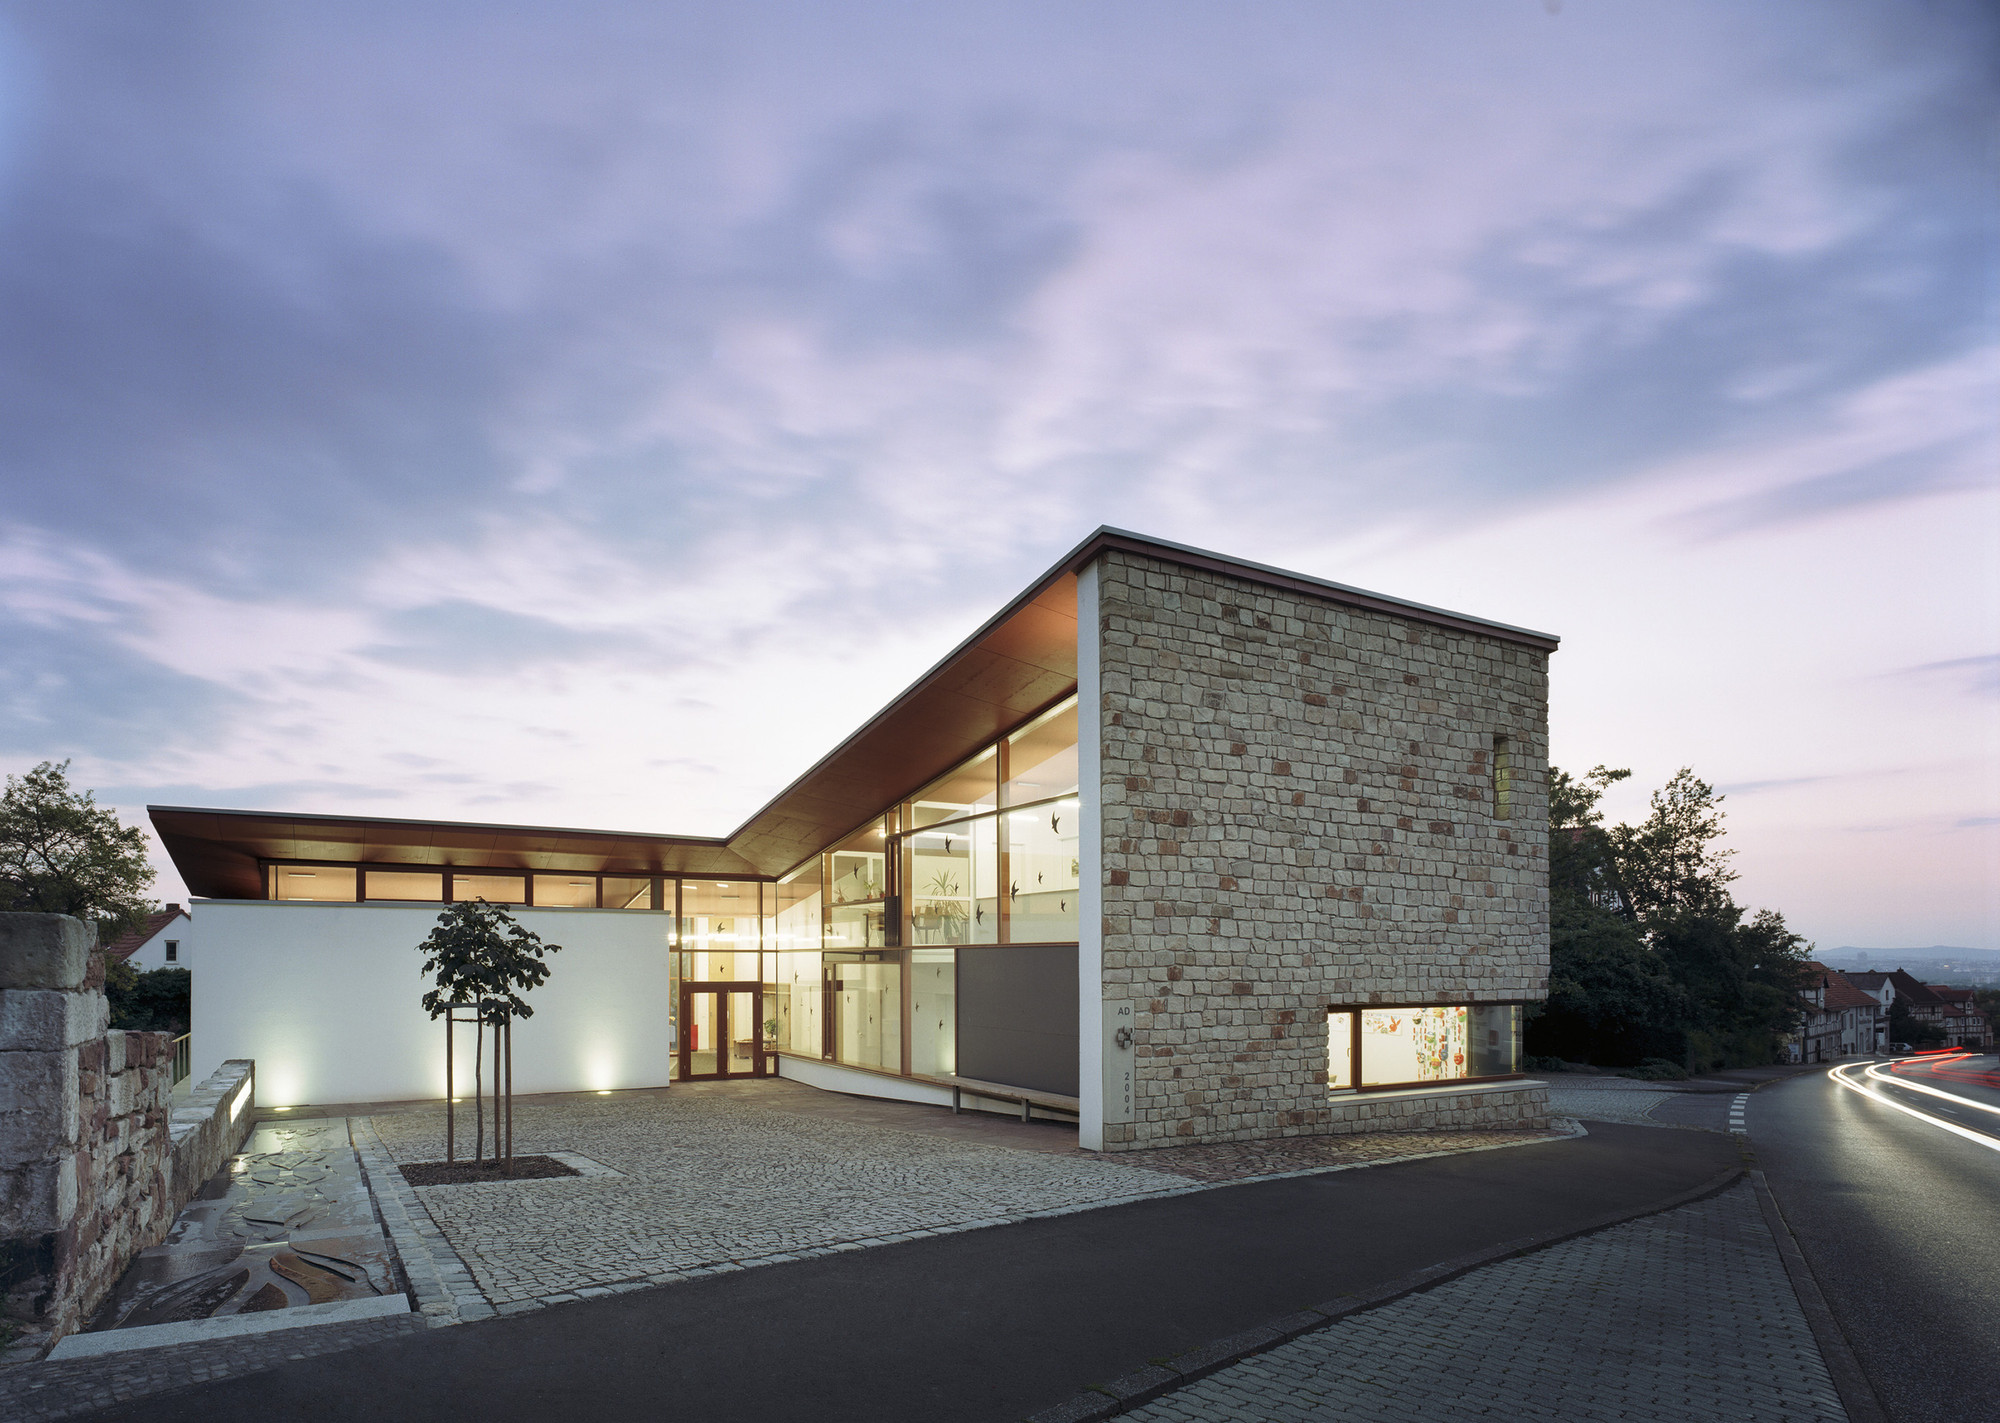 Community Centre Lohfelden / HHS Planer + Architekten AG, © Constantin Meyer